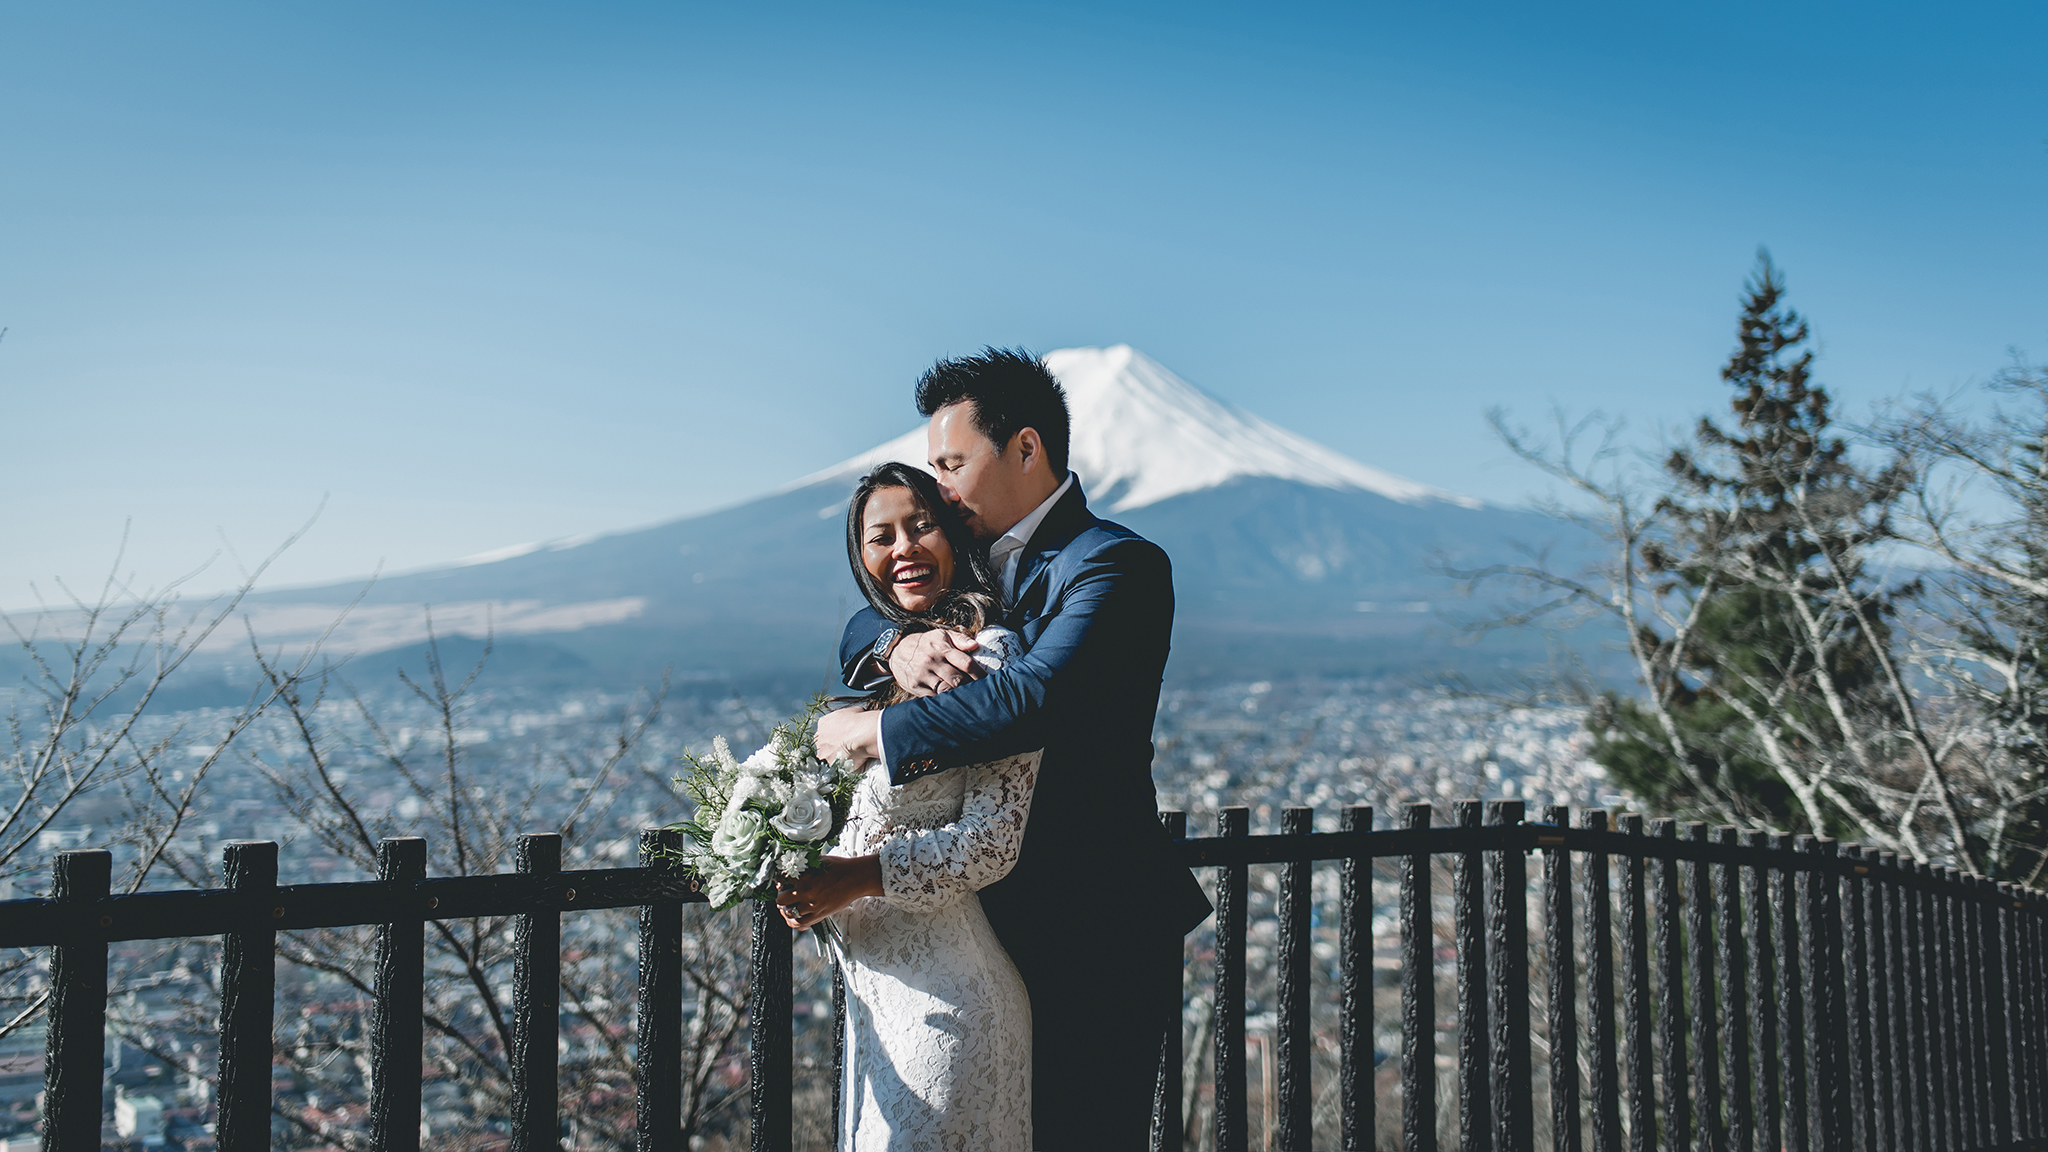 Japan Prewedding 1.JPG